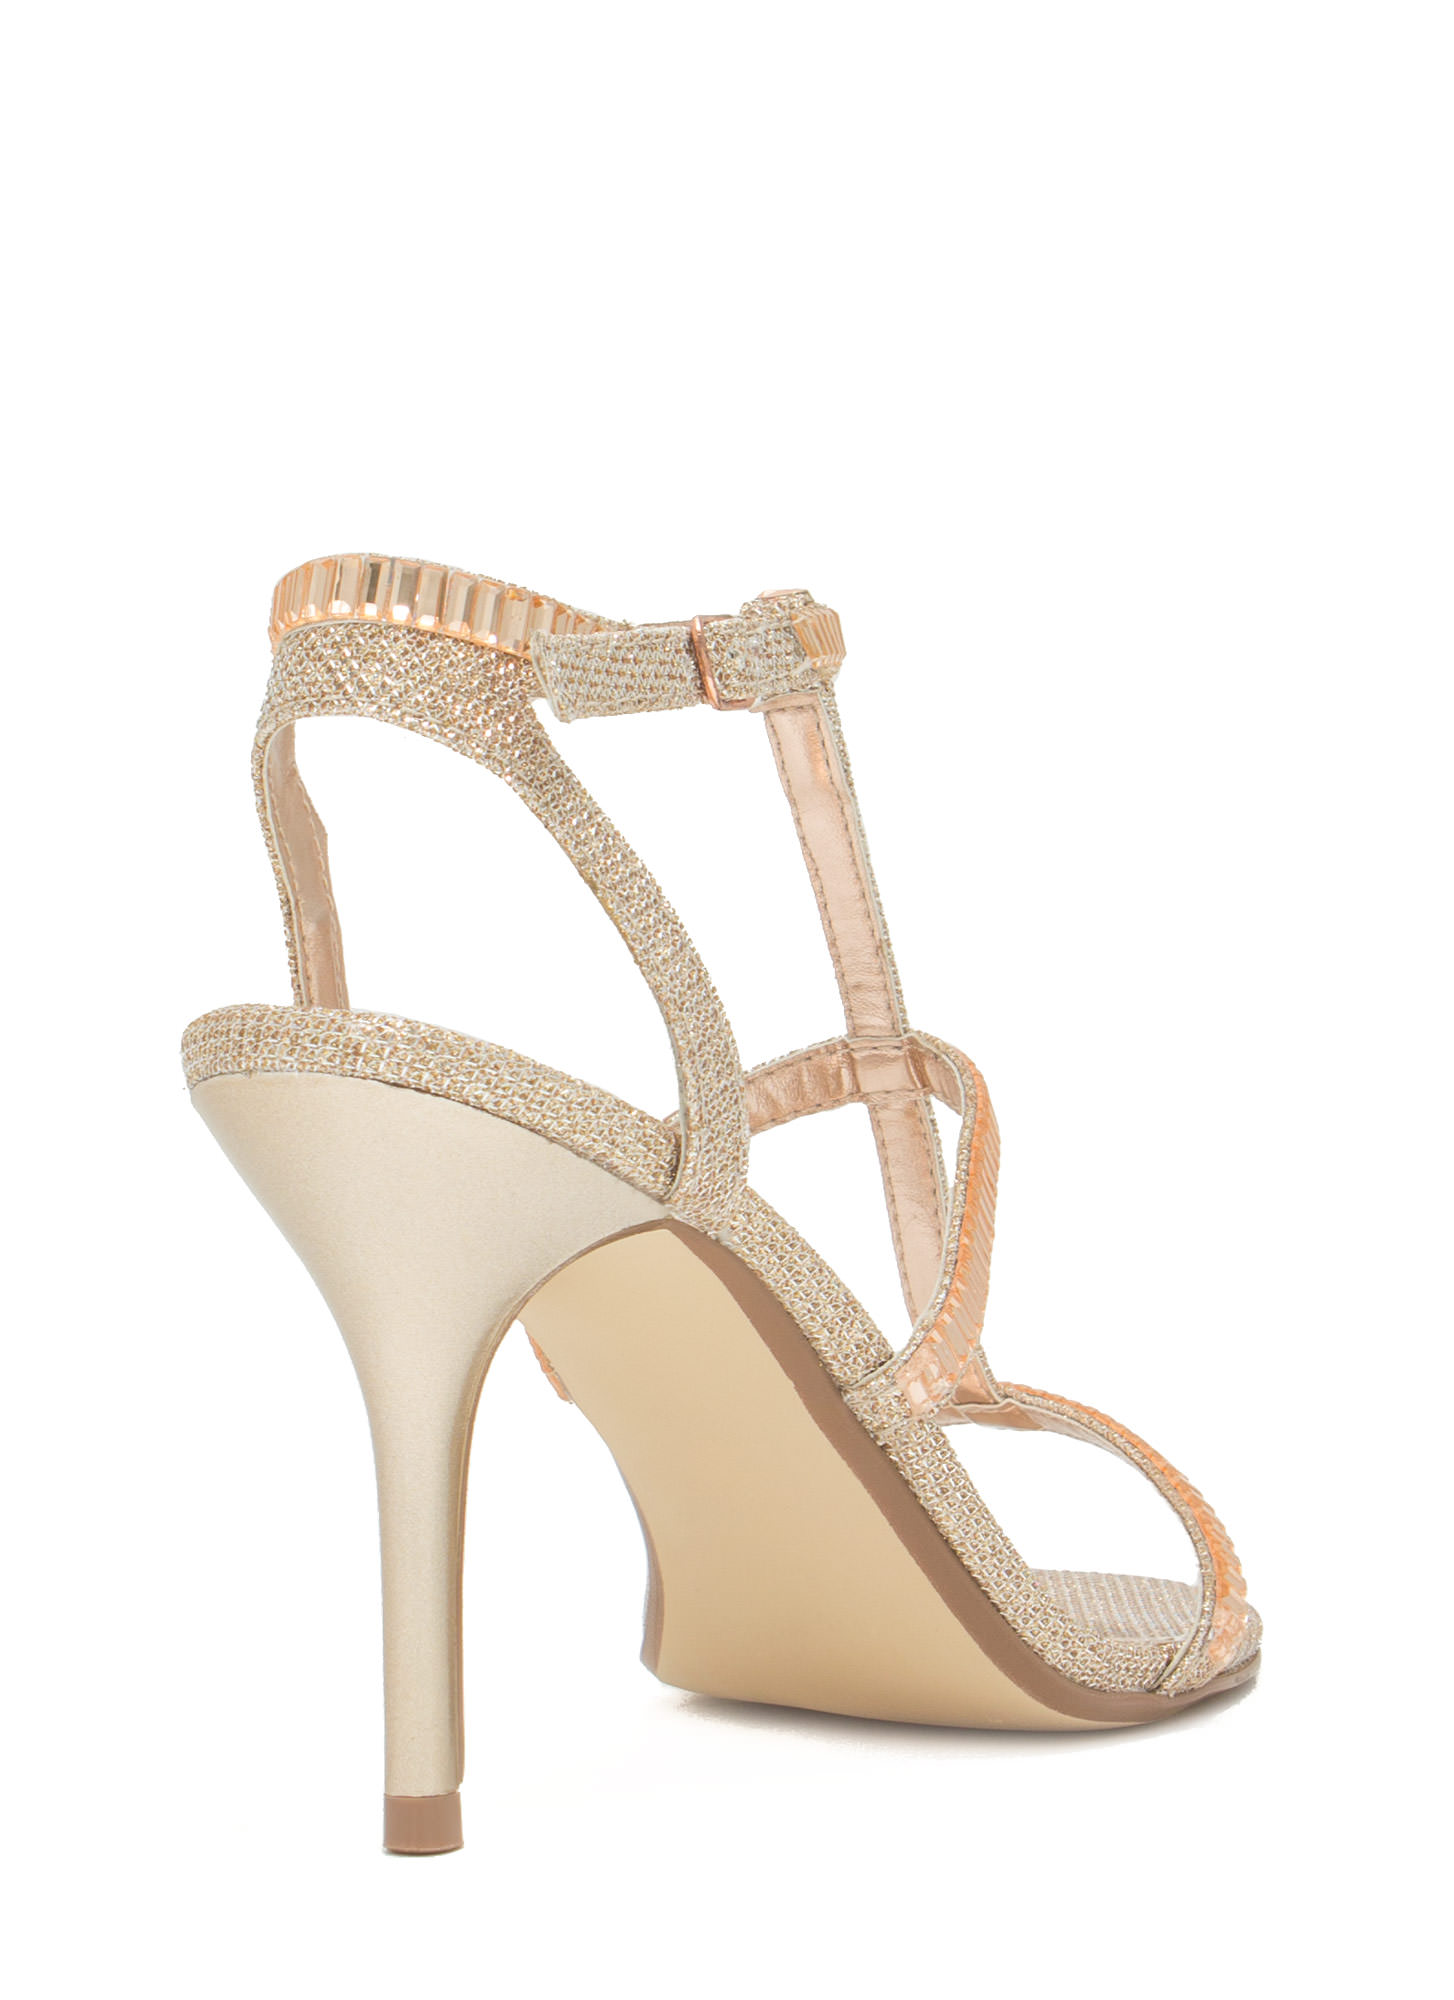 Moonlit Dancer Faux Jewel Stiletto Heels ROSEGOLD